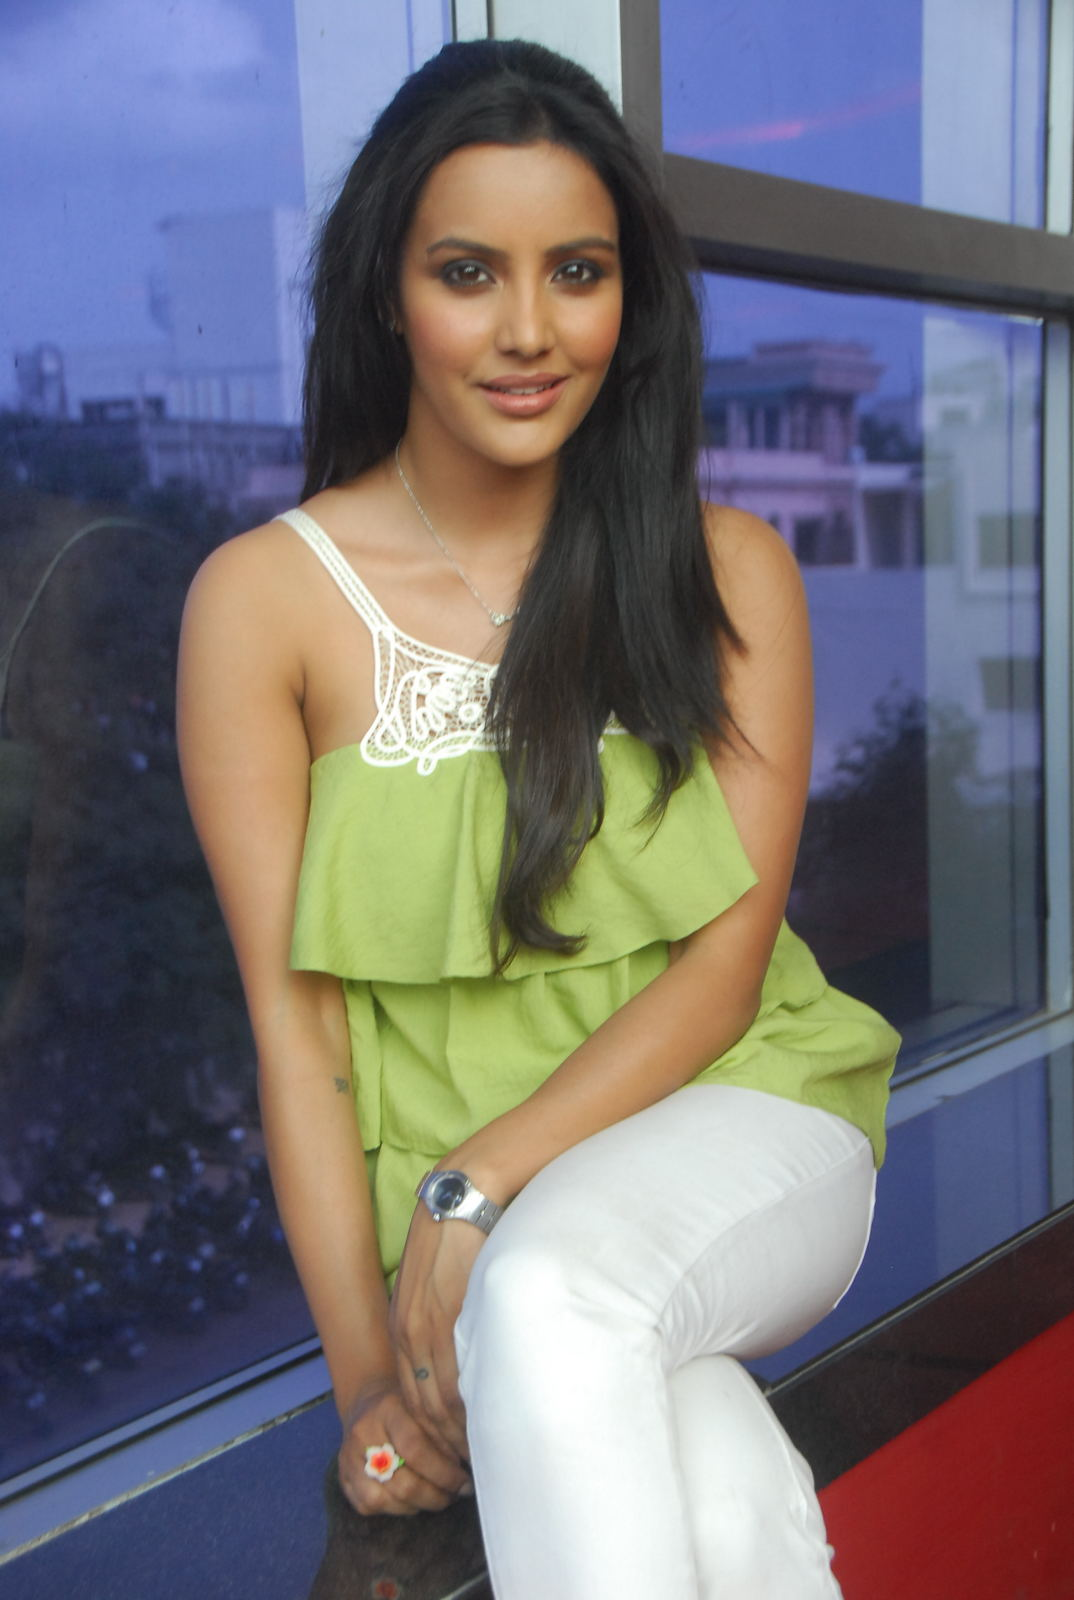 ACTRESS IMAGES | WALLPAPERS | STILLS: PRIYA ANAND IN MINI